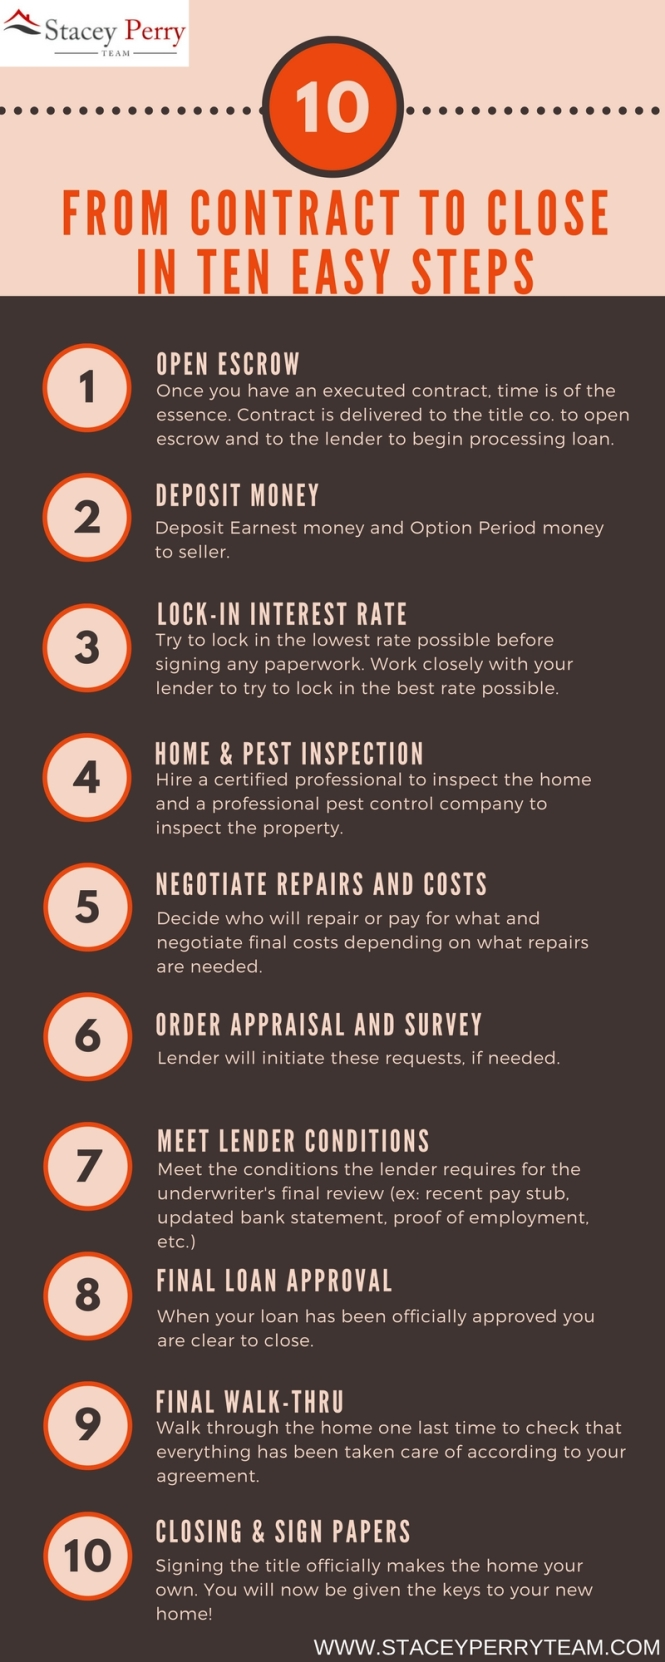 from-contract-to-close-in-10-easy-steps-2-10